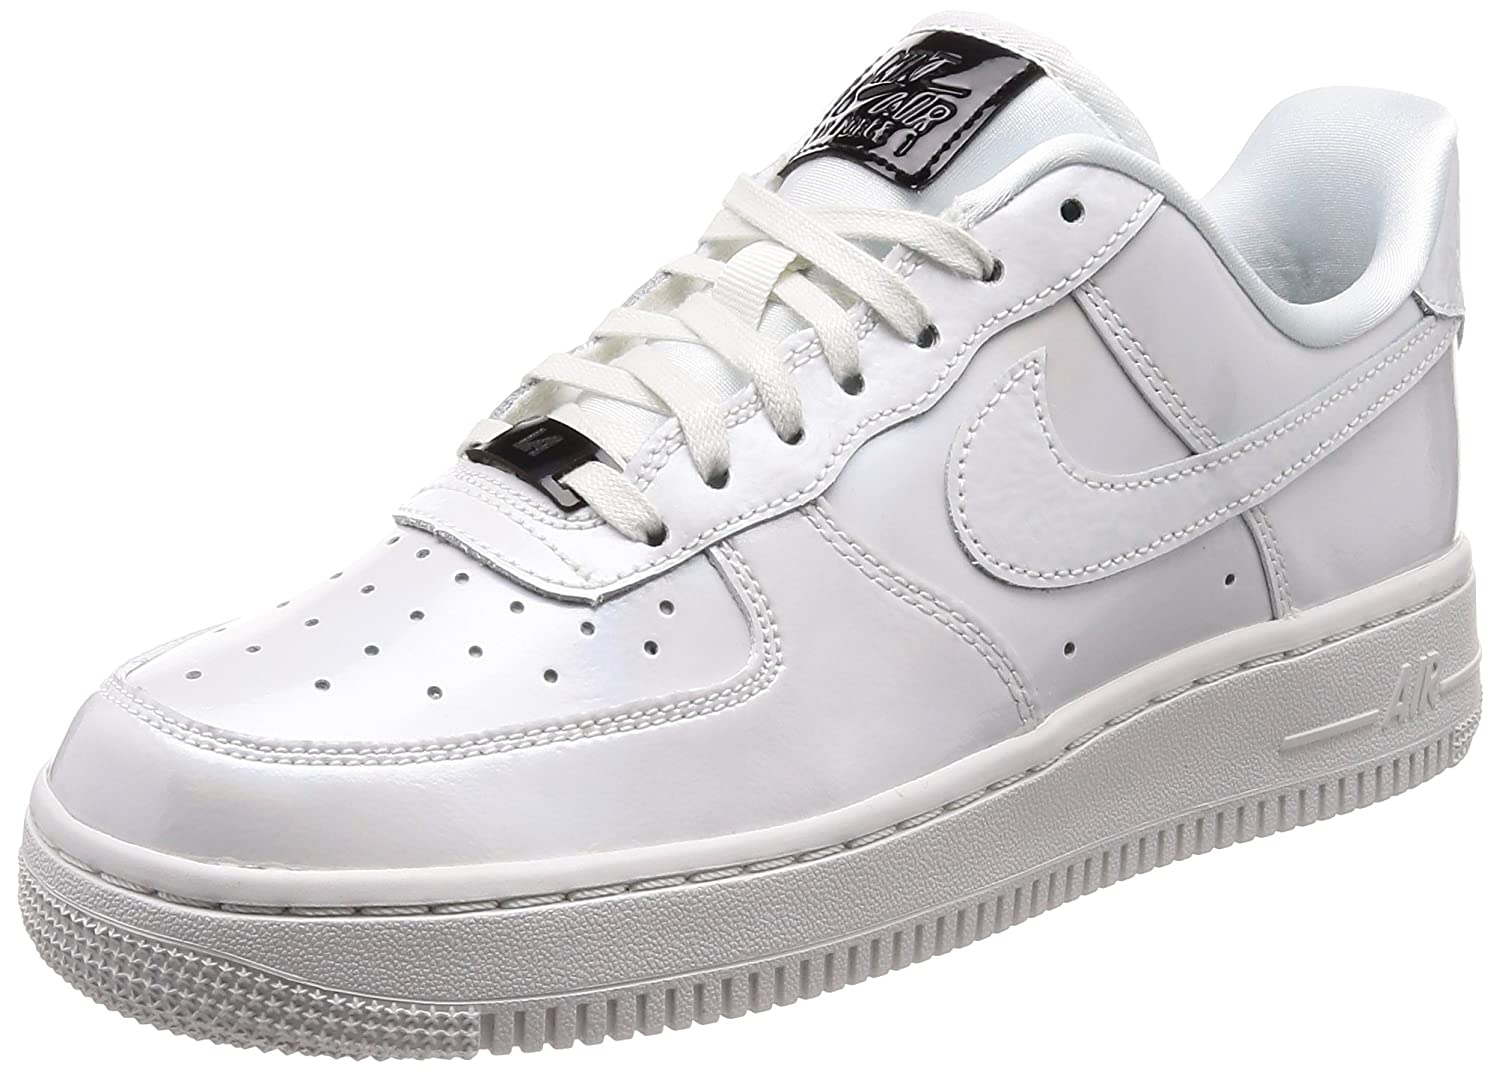 Nike Woherren WMNS Air Force 1 07 LX Summit Weiß Summit Weiß 6.5 US